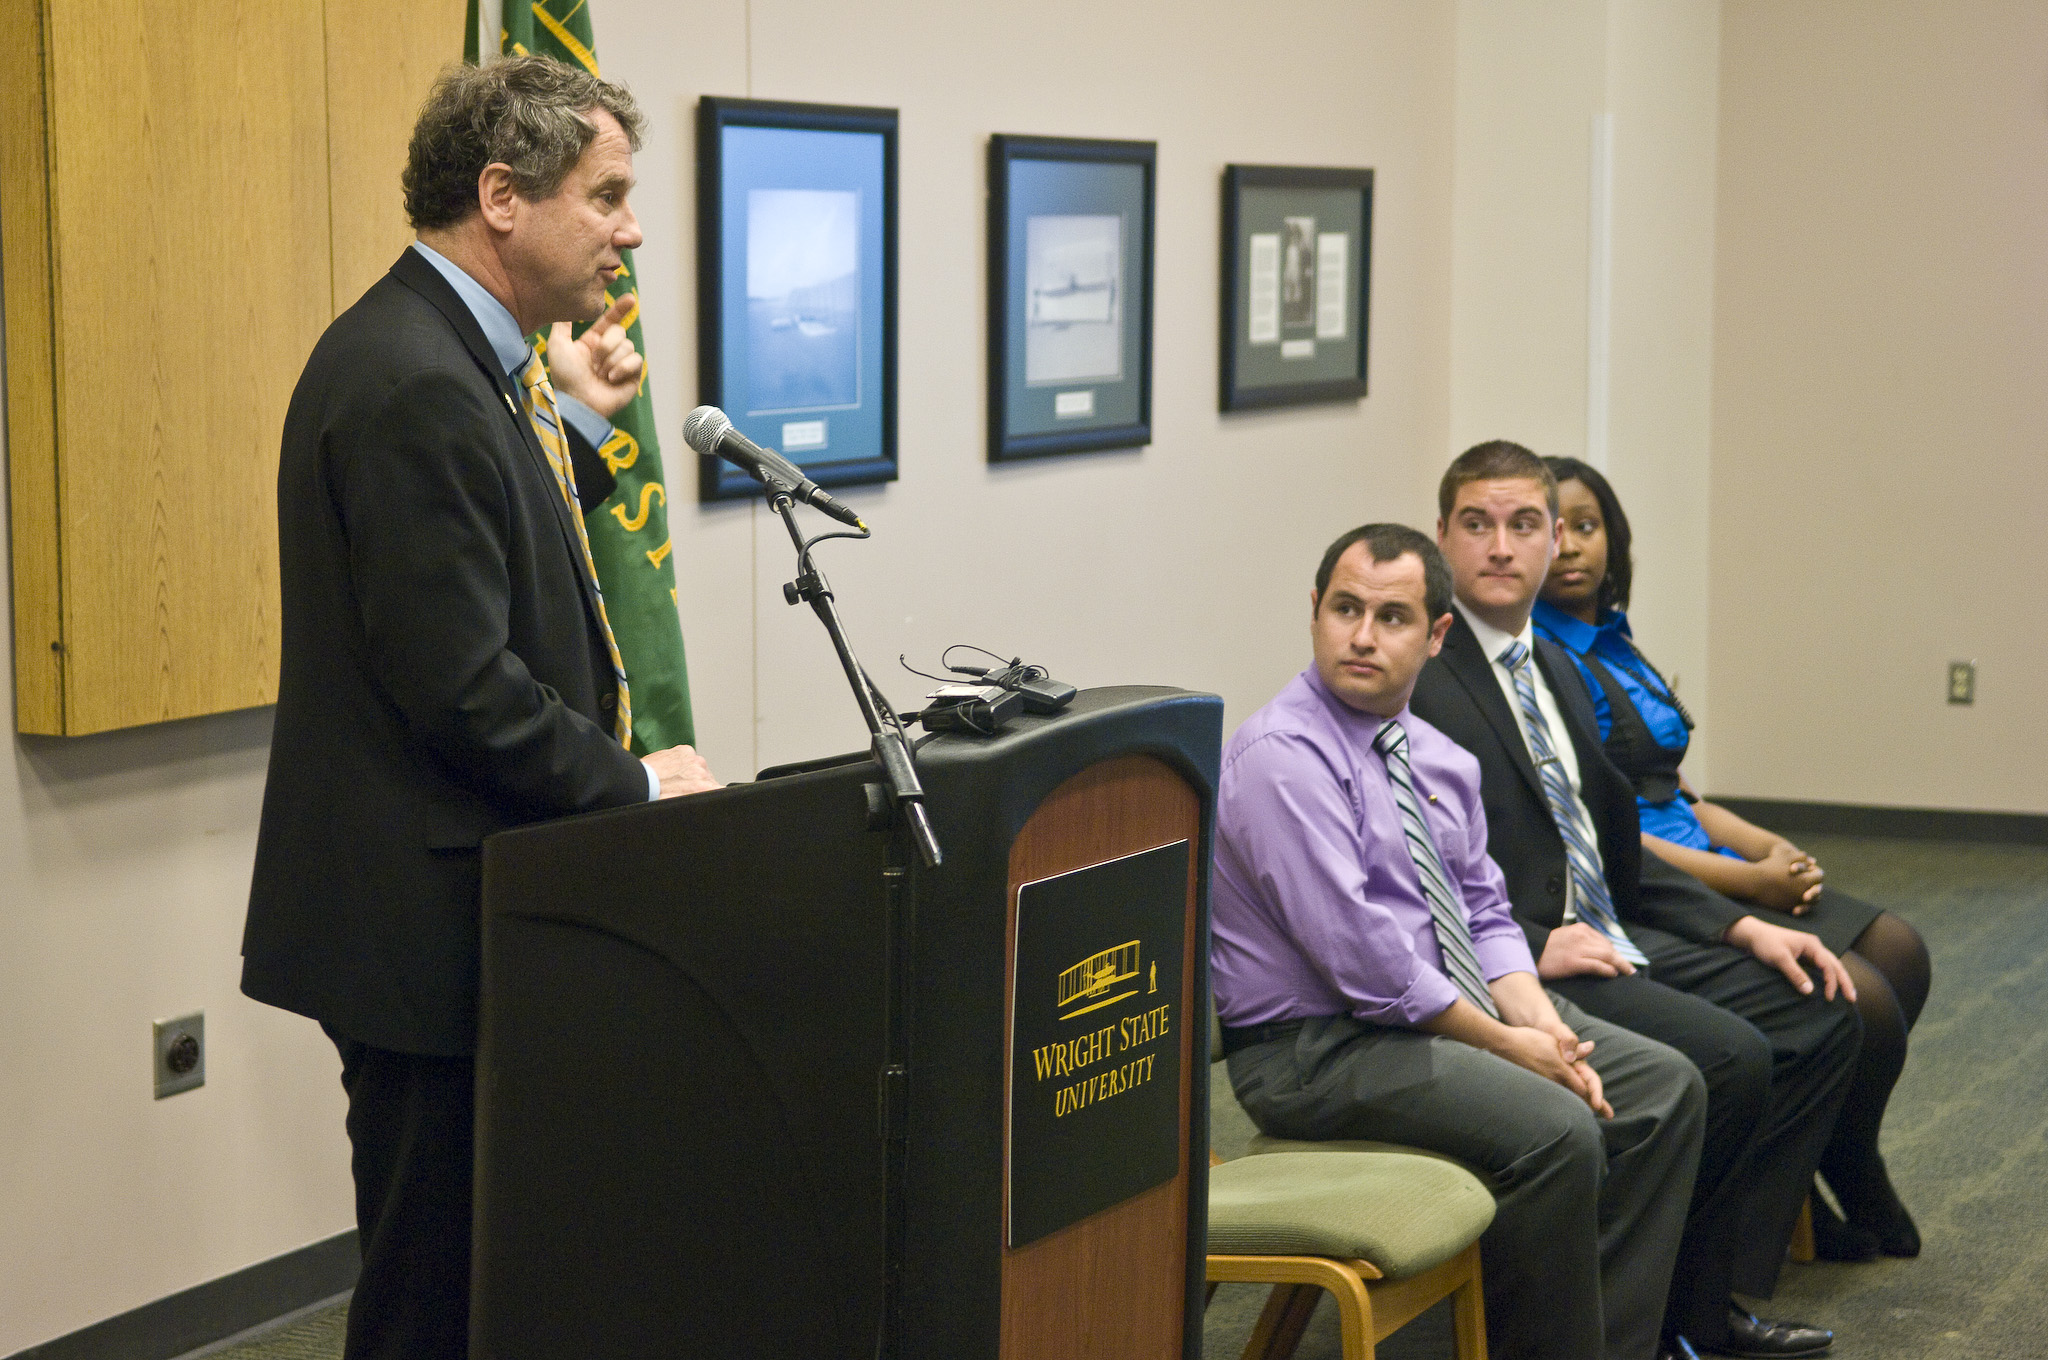 Photo of U.S. Senator Sherrod Brown and three Wright State University students who also spoke at the news conference.